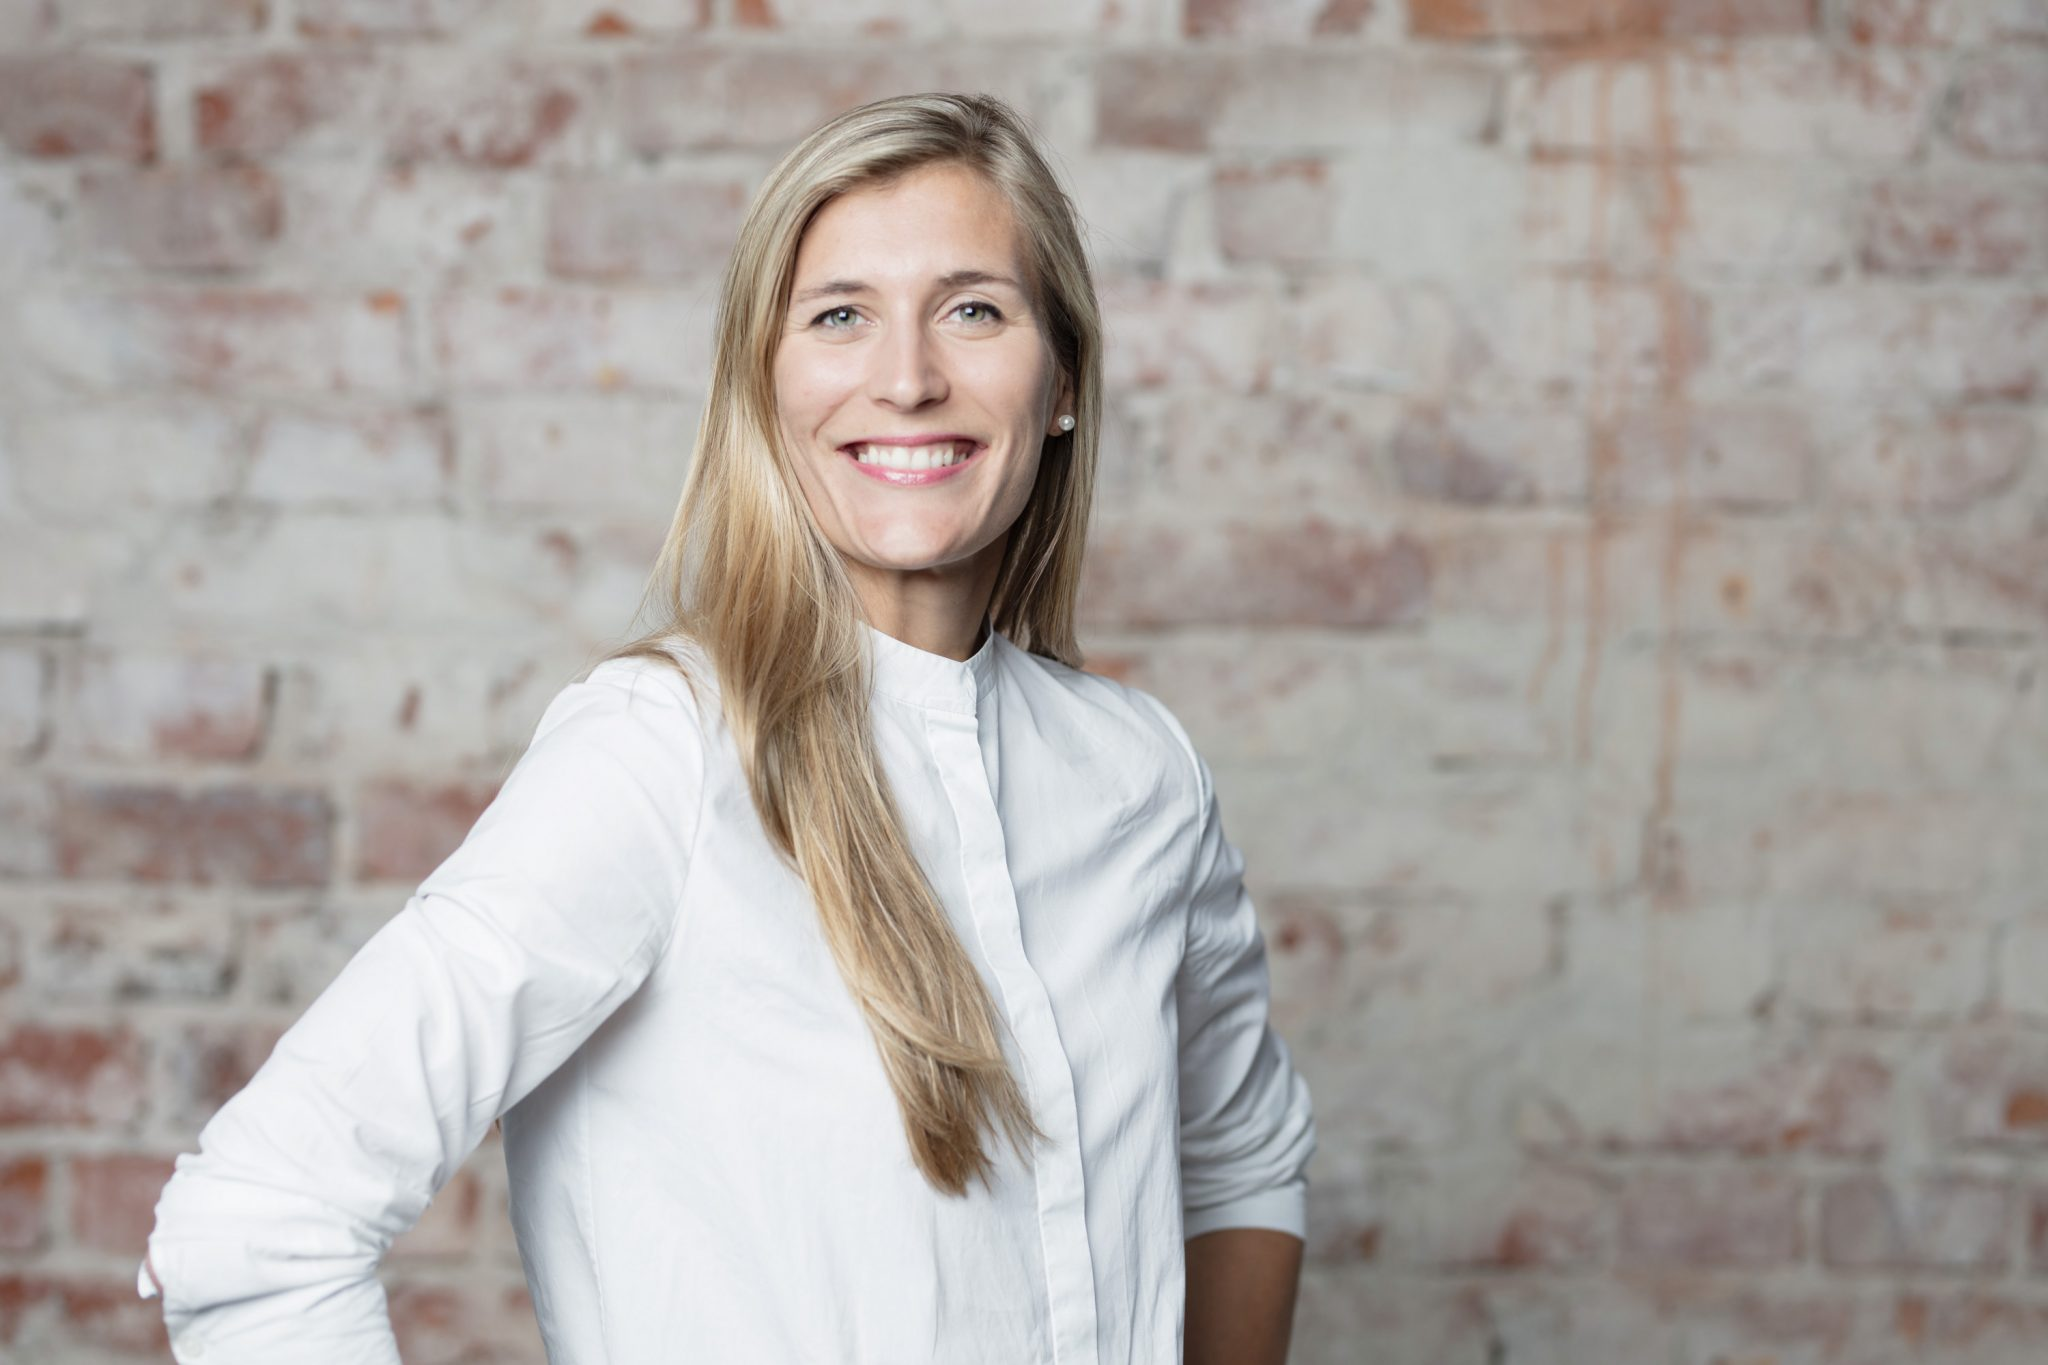 Agate Freimane Investment Manager at Norrsken Foundation focused on investing in impact tech start-ups.